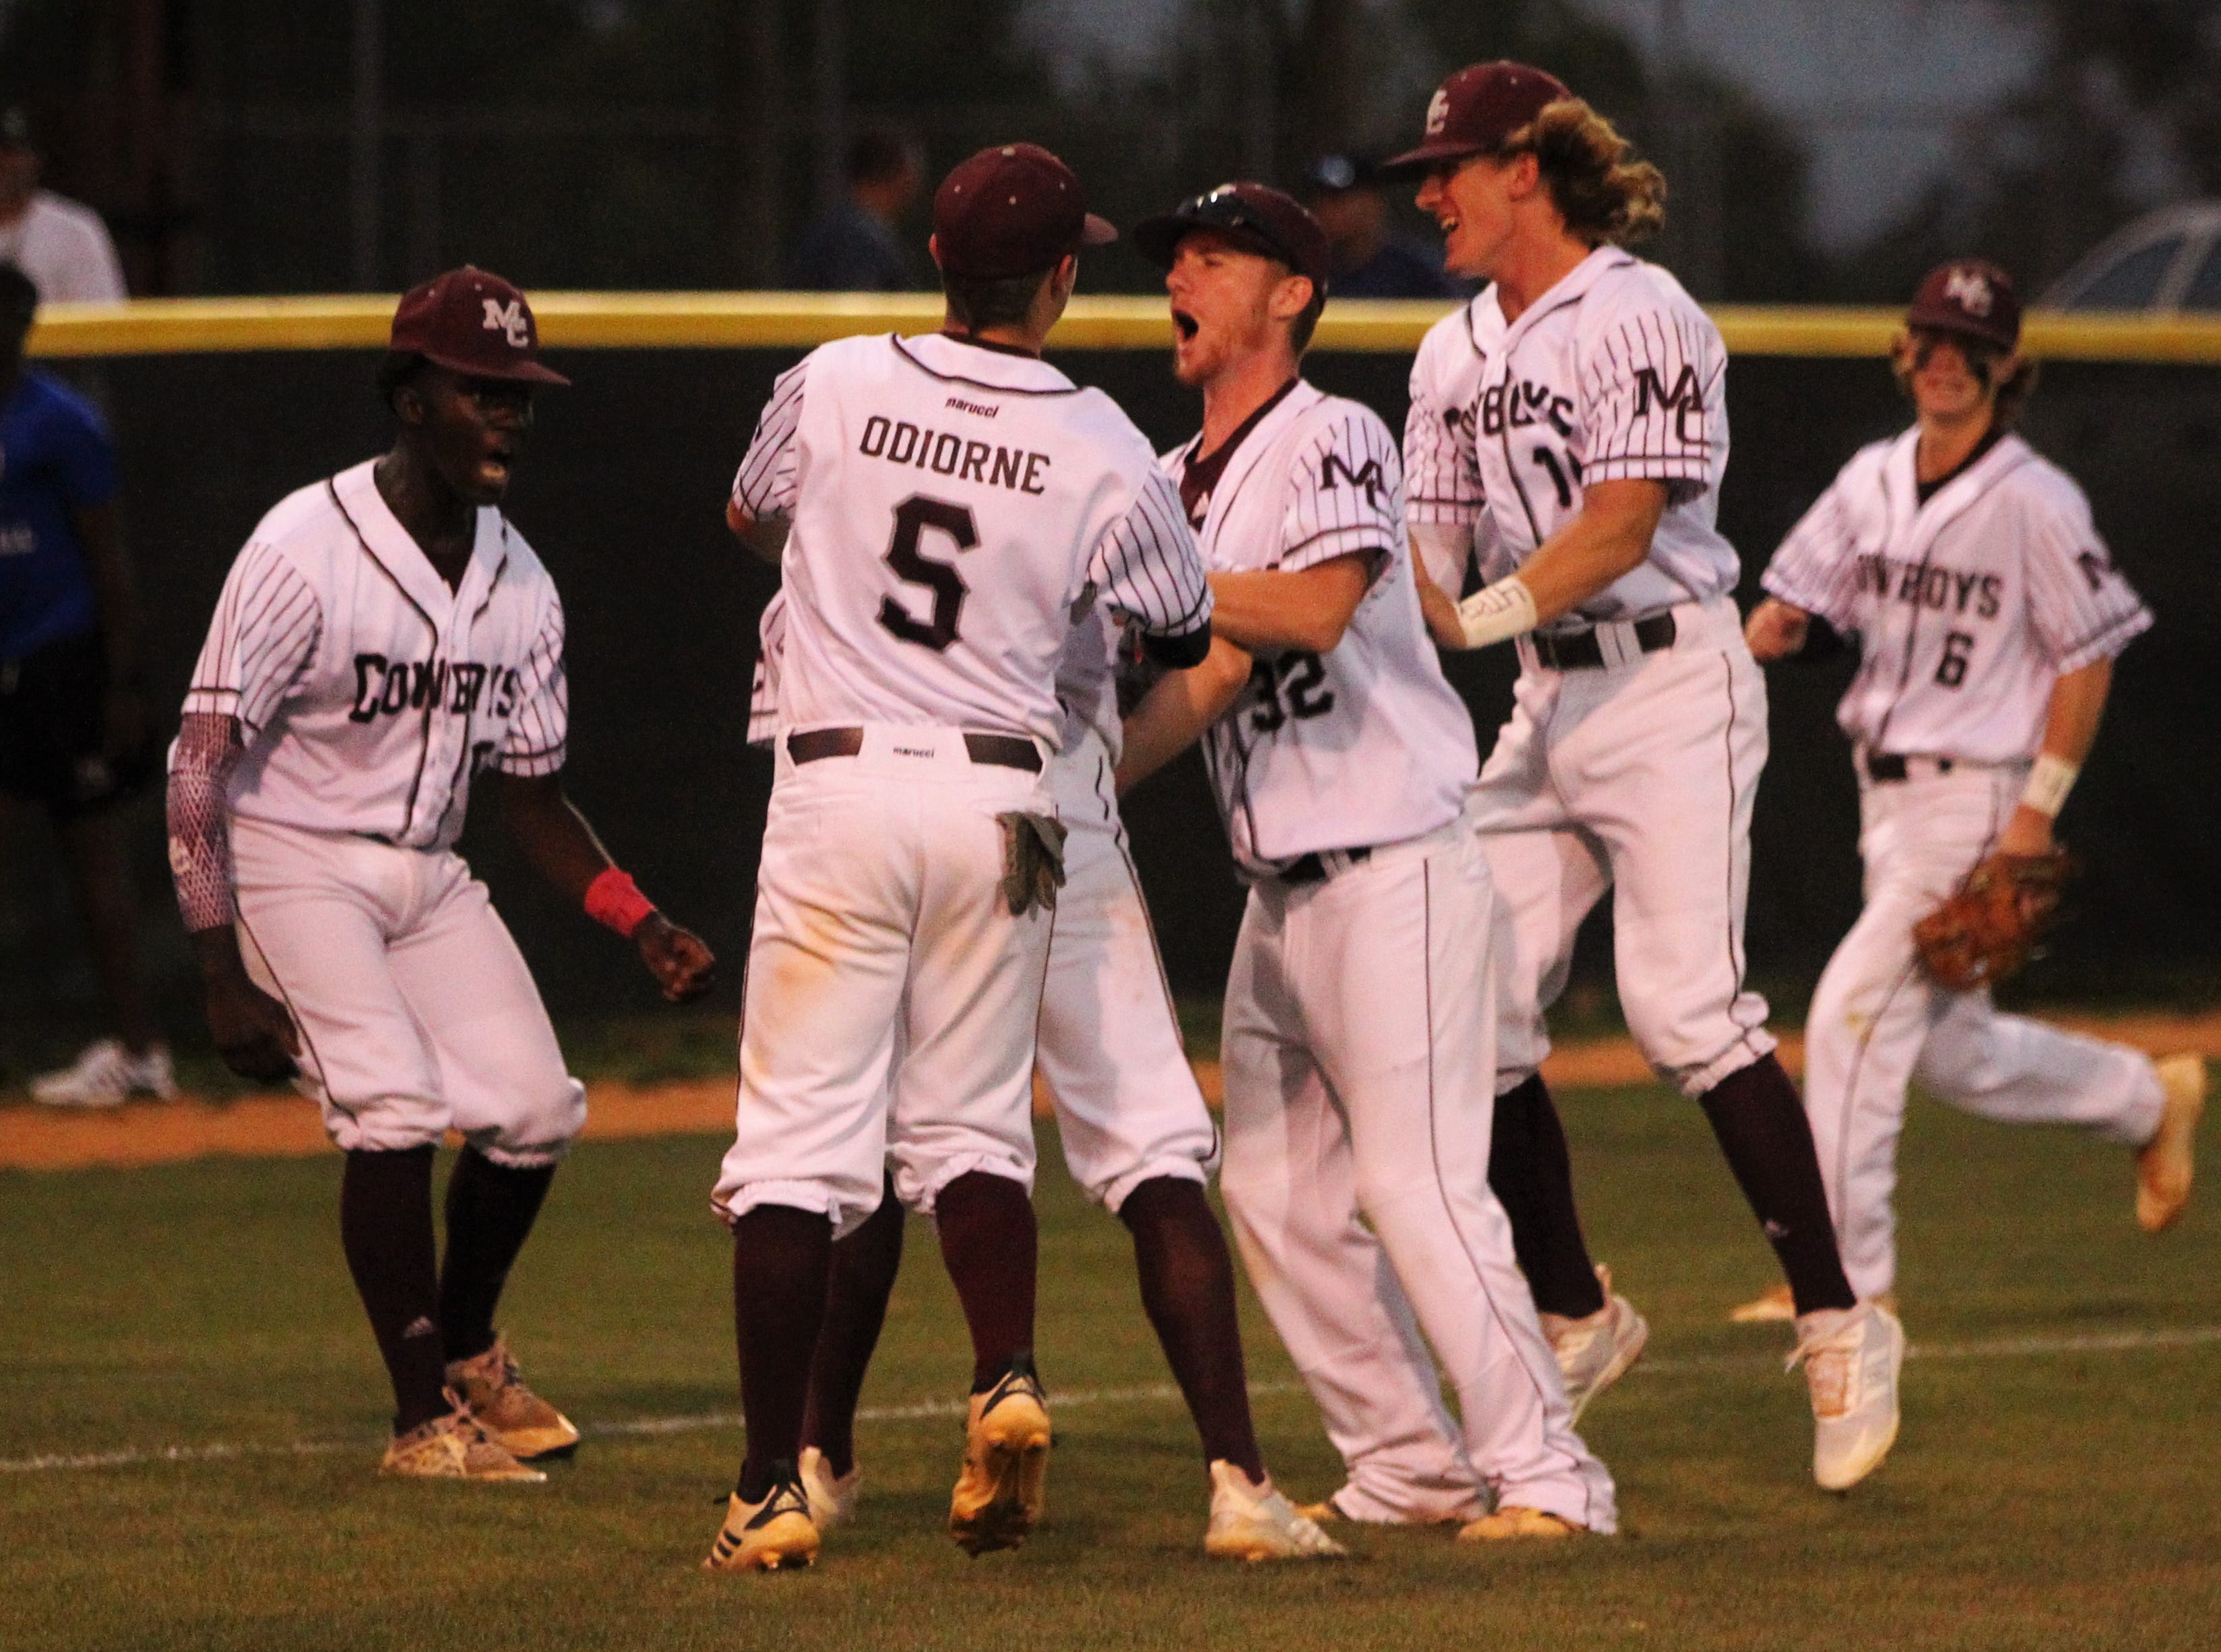 Madison County celebrates beating Union County 1-0 during a Region 2-1A semifinal on May 14, 2019. The Cowboys played for former player Trey Mitchell, who died in a drowning accident last week.